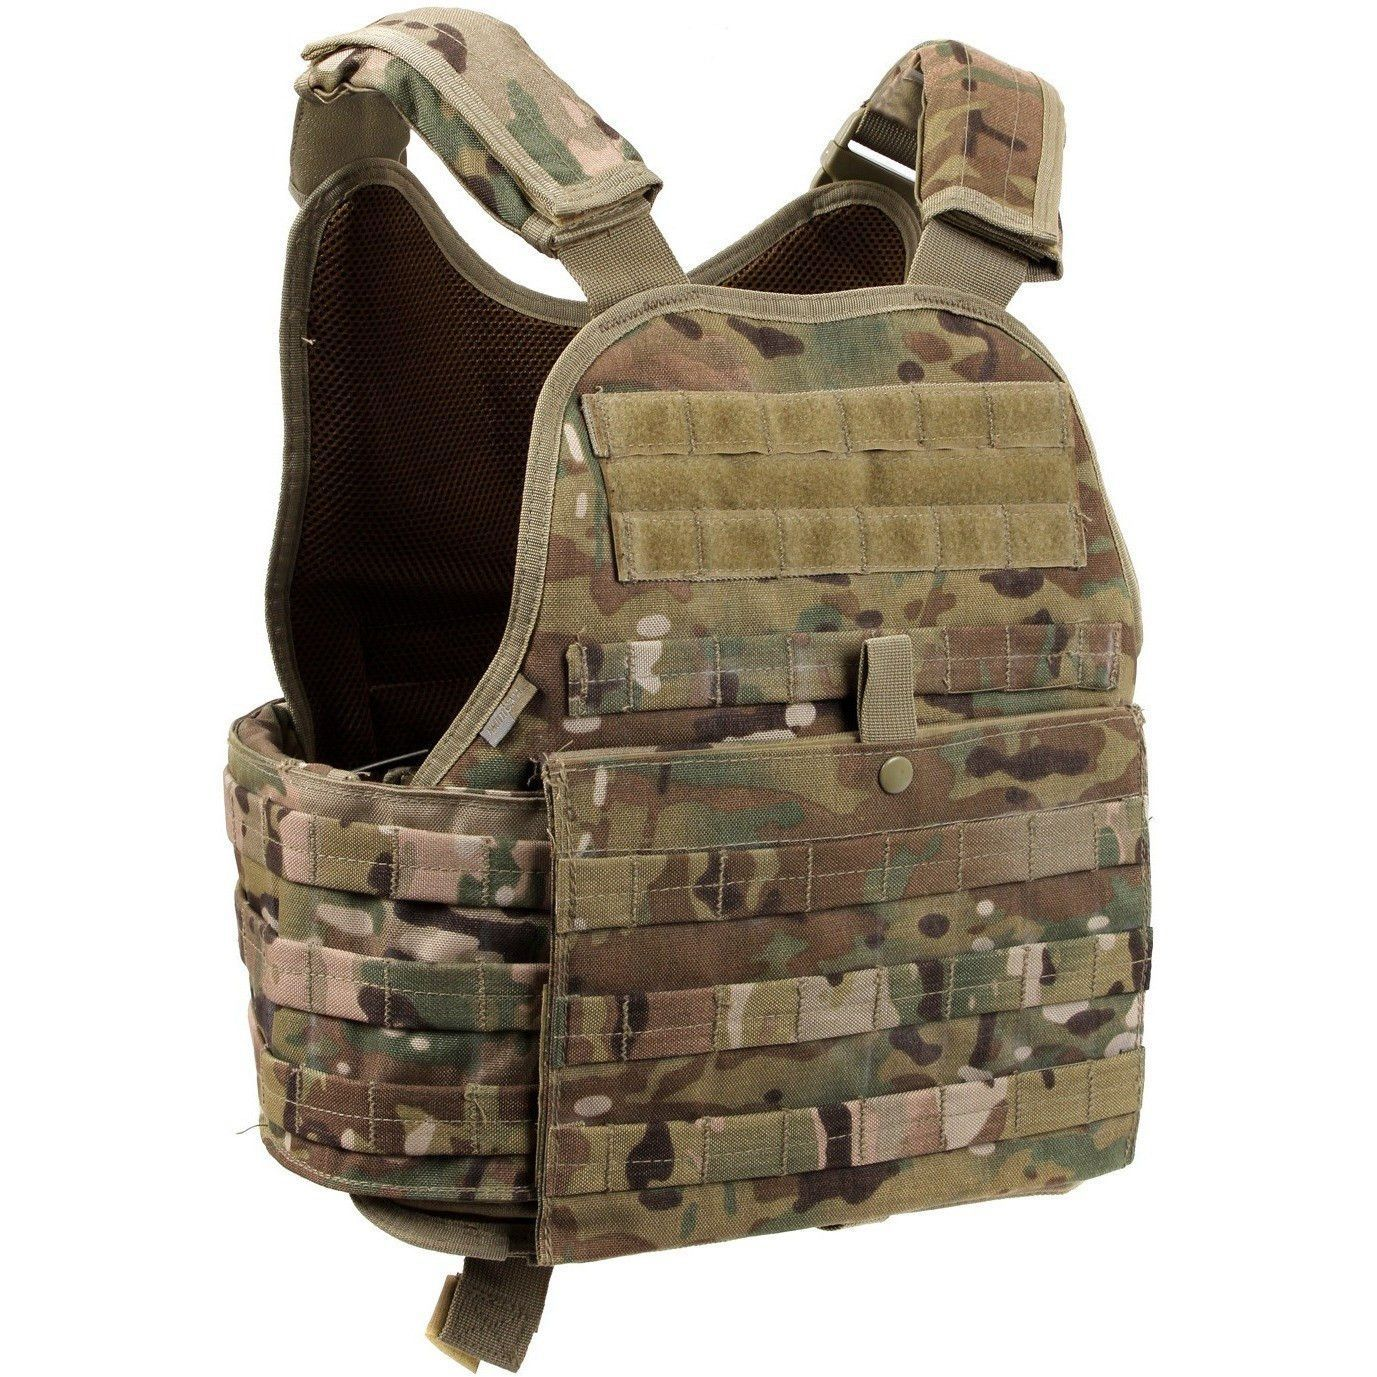 MOLLE Plate Carrier Vest - Multicam - Rothco  561329880